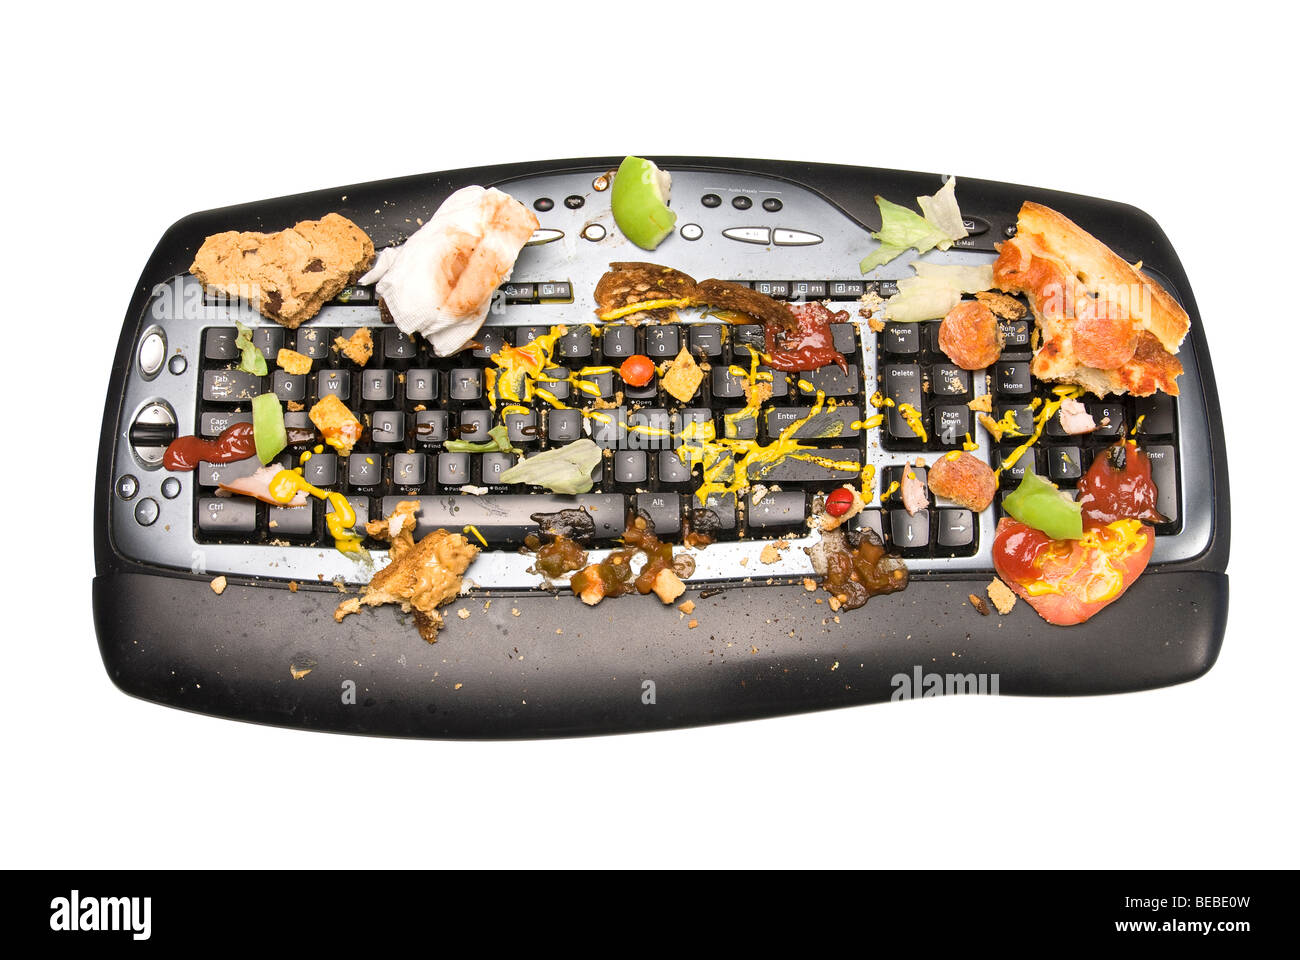 A keyboard covered with food remnants. - Stock Image